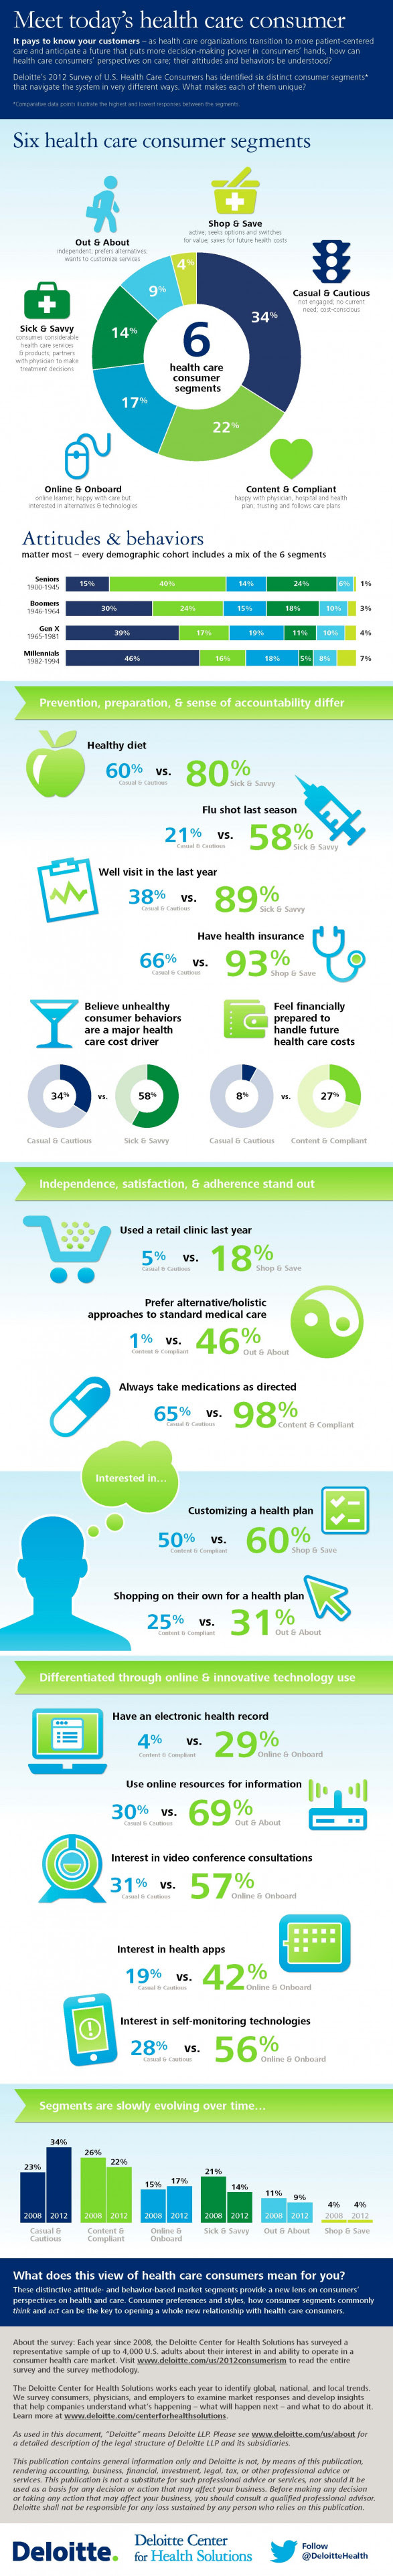 Meet today�s health care consumer (INFOGRAPHIC)